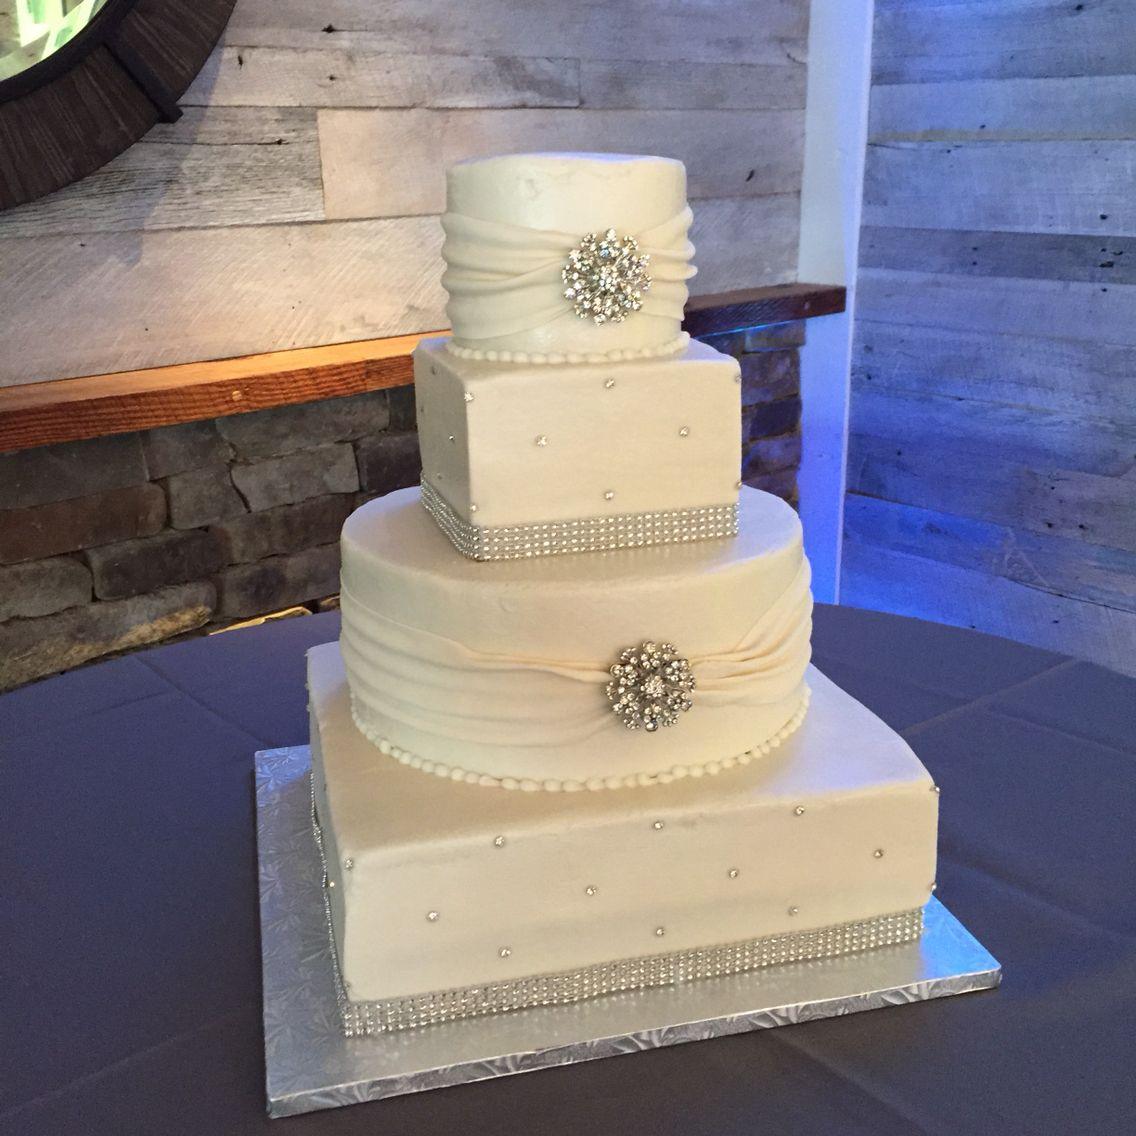 4 tier round and square white buttercream wedding cake with fondant sashes, brooches and bling